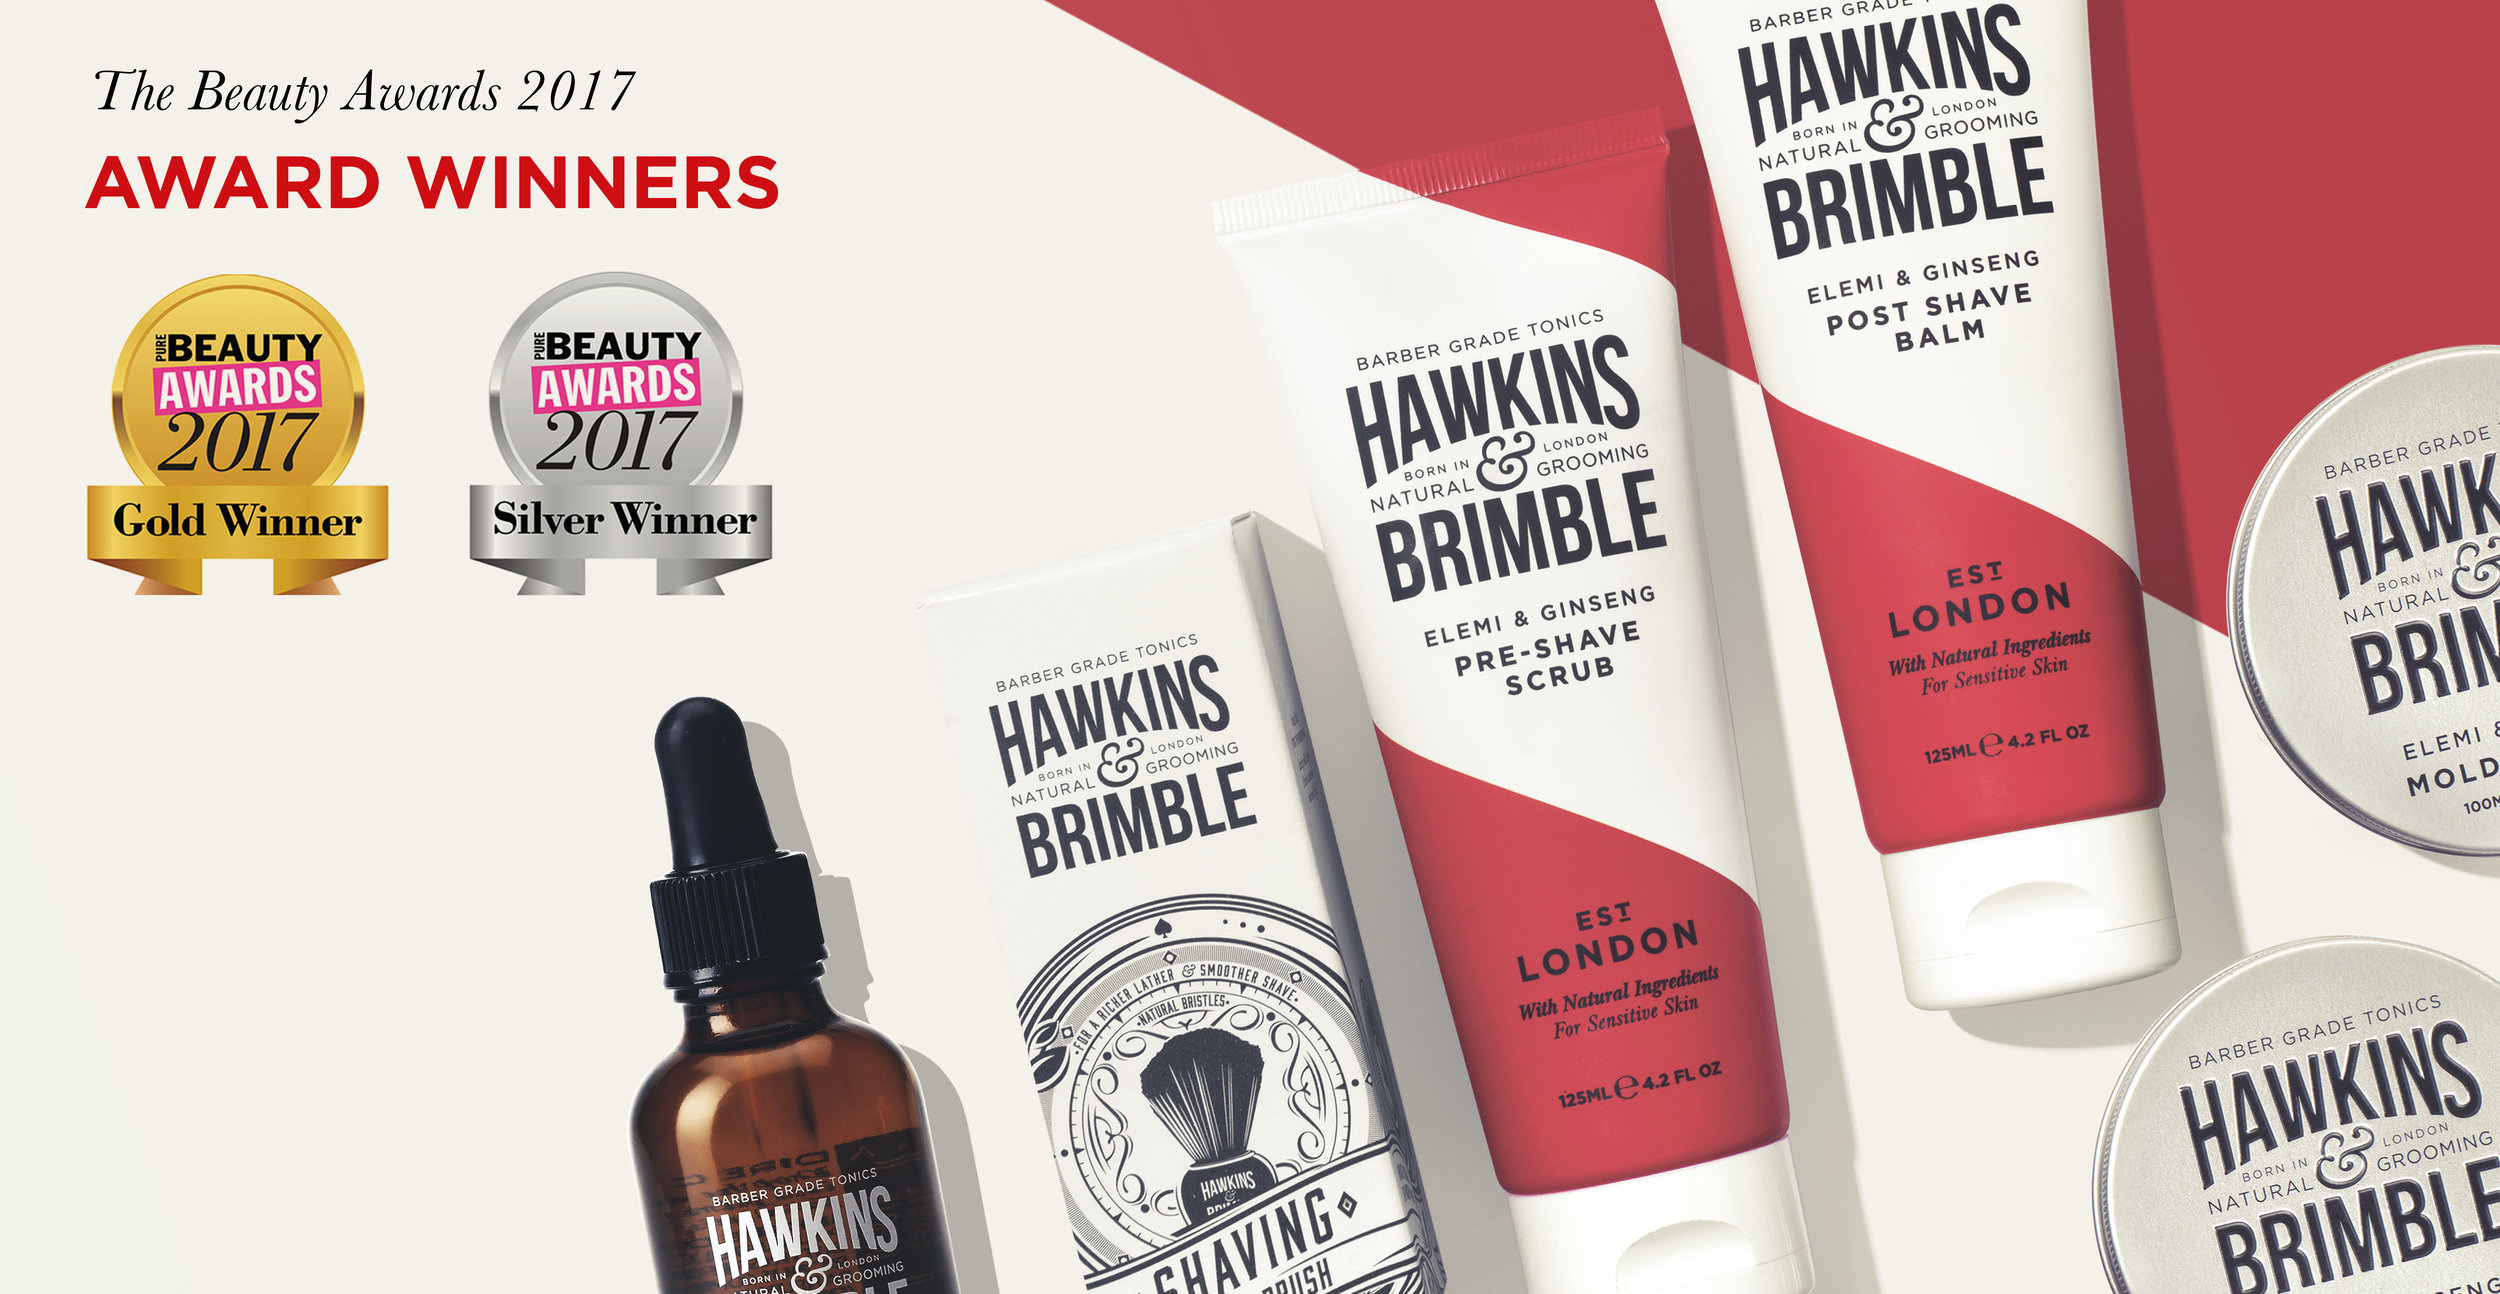 Launching a male grooming brand - Brand Awards